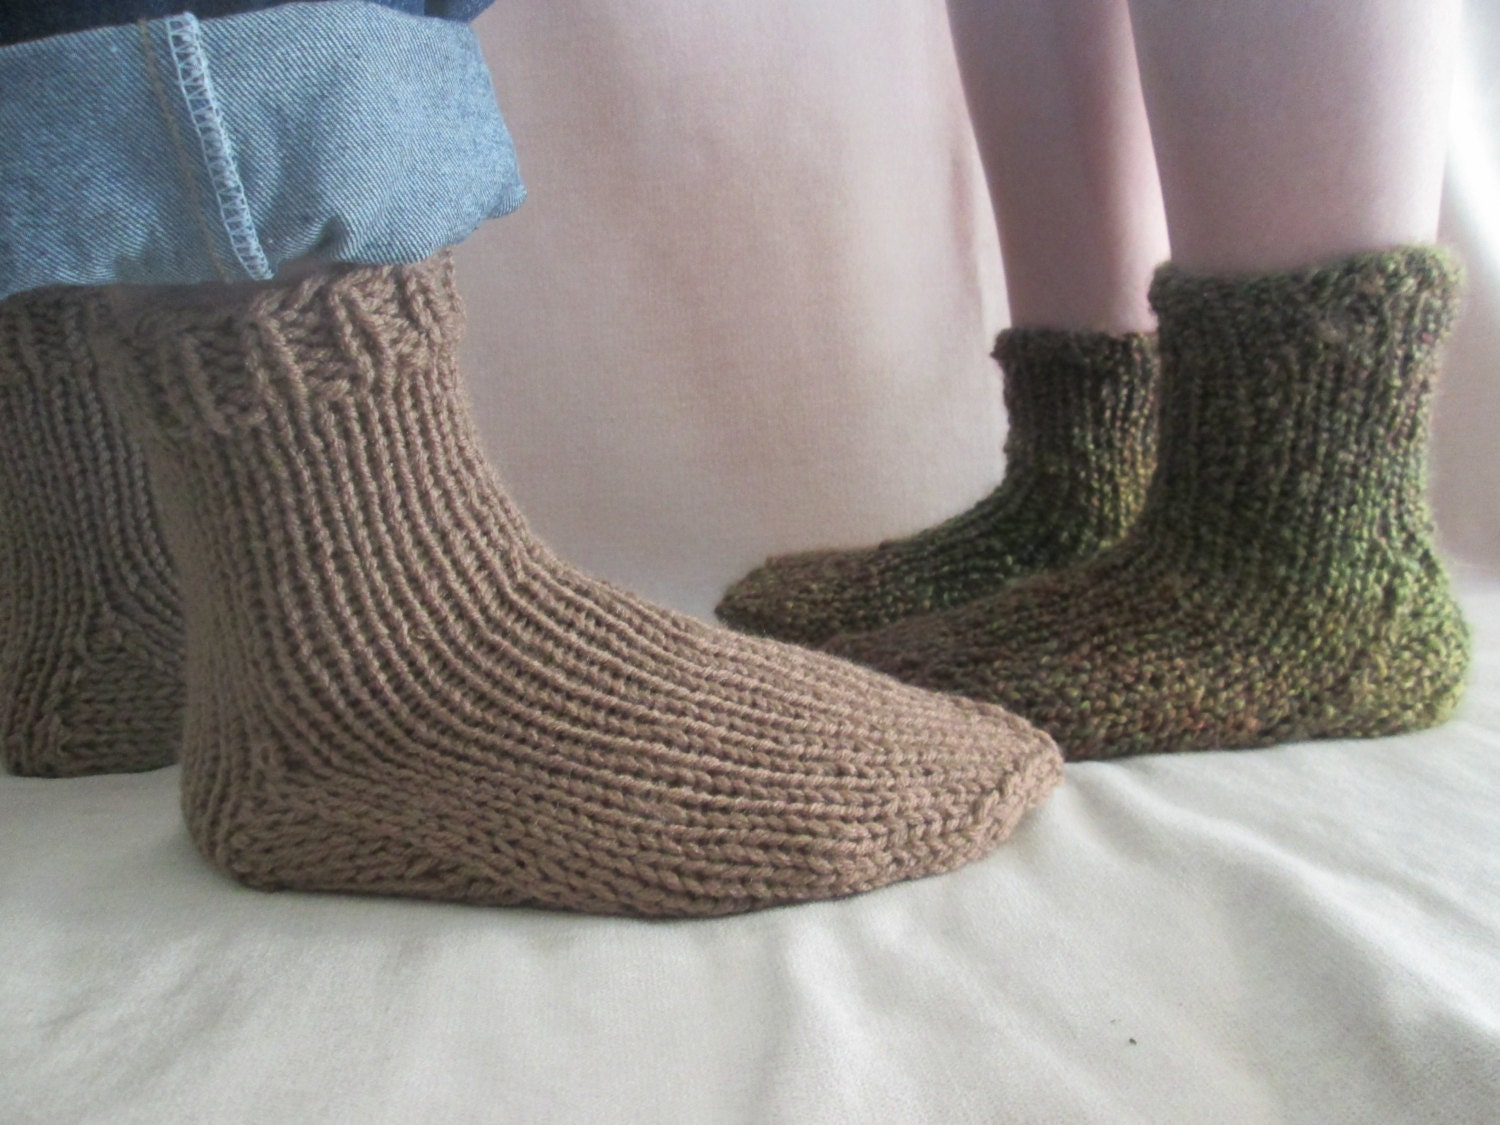 Slipper socks knitting pattern chunky knit socks pattern quick this is a digital file bankloansurffo Image collections